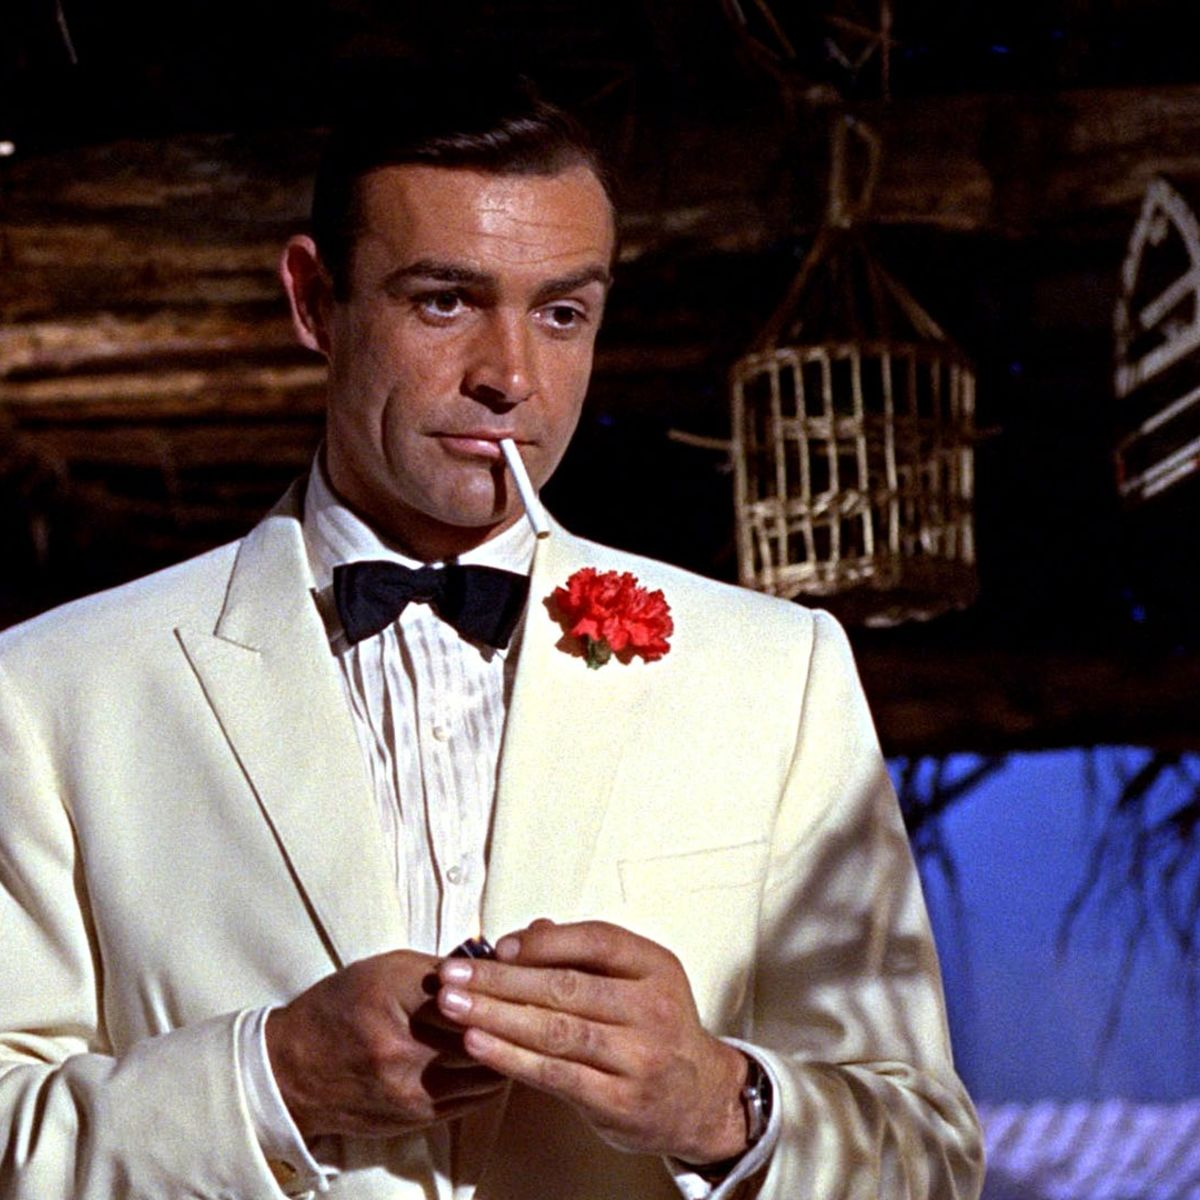 goldfinger-james-bond-007-sean-connery.jpg